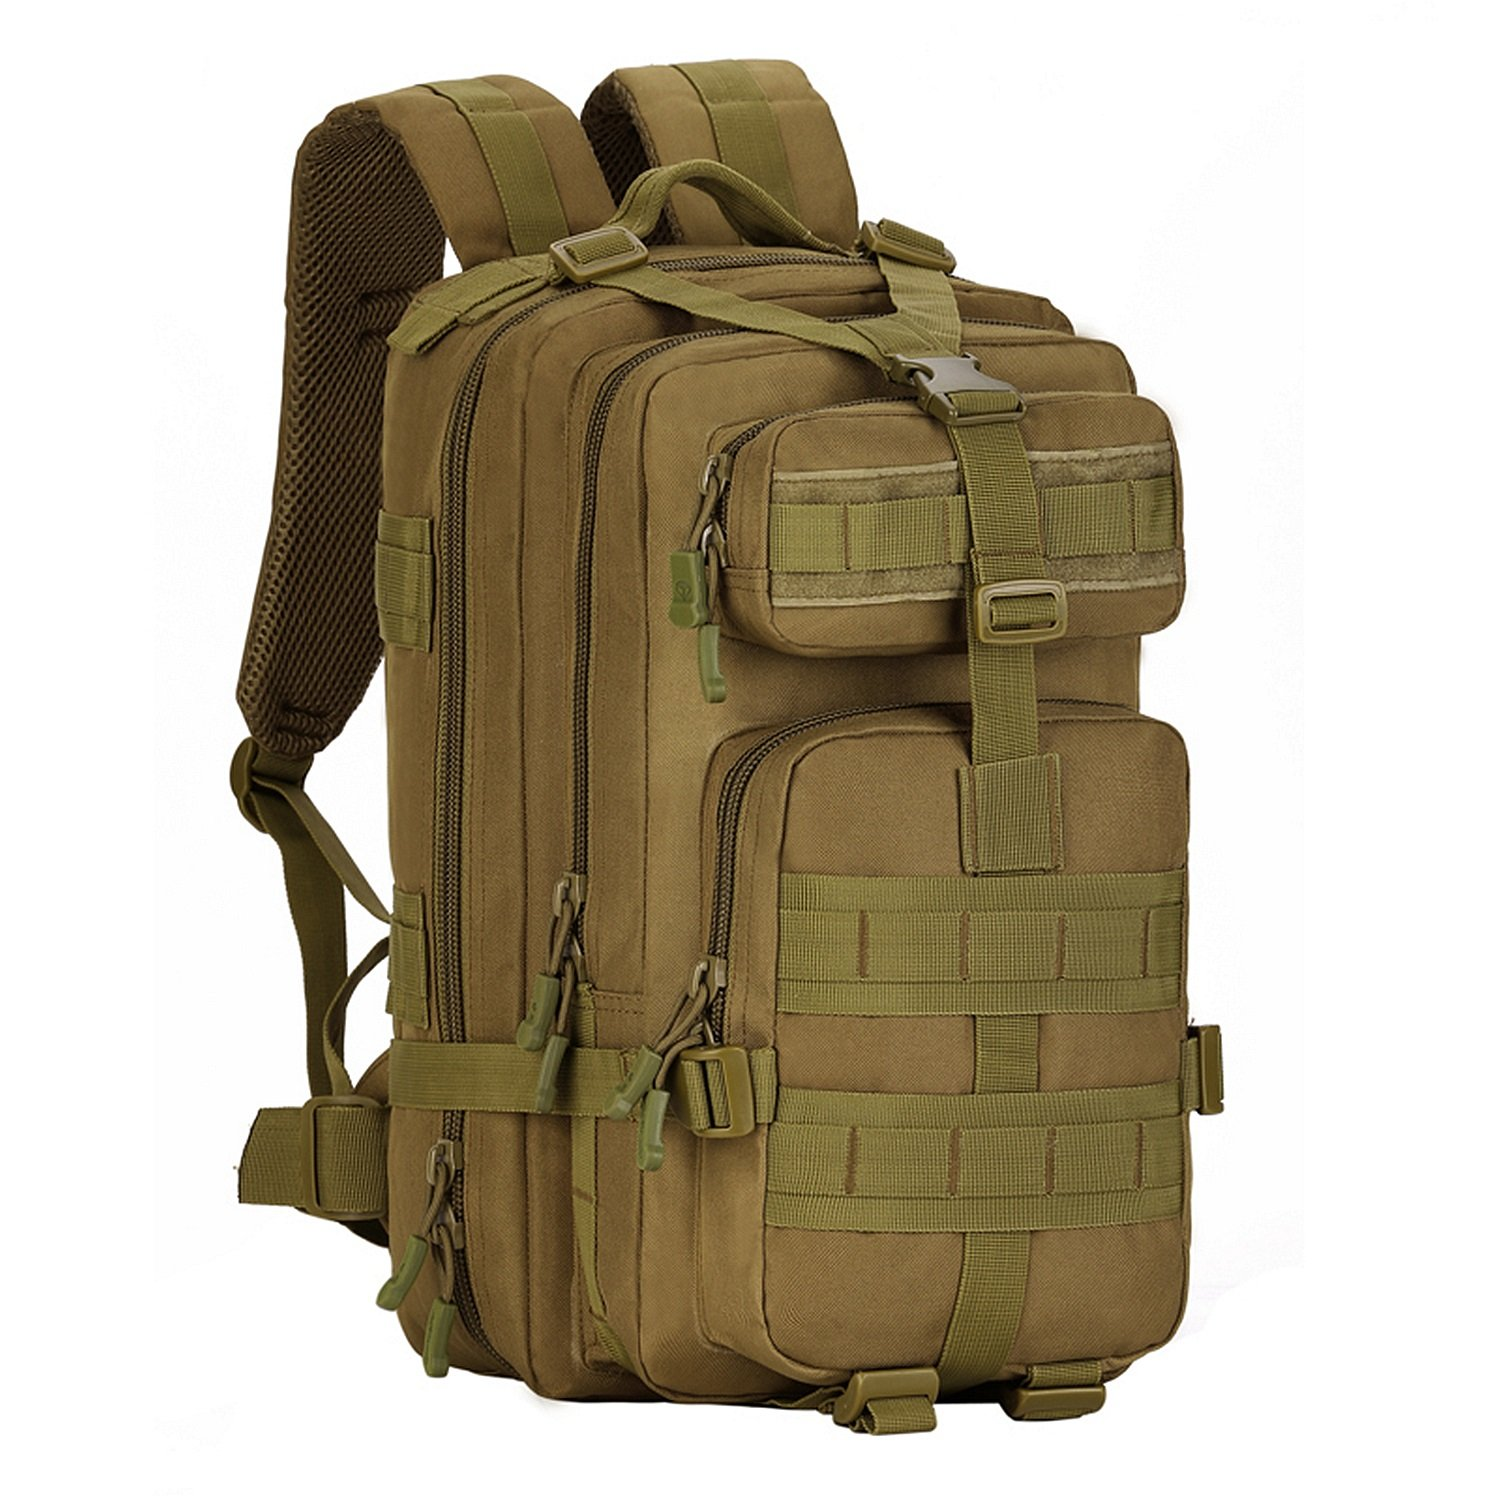 YFNT Tactical Backpack Military 3 Day Assault Pack Molle Bug Out Bag Rucksack